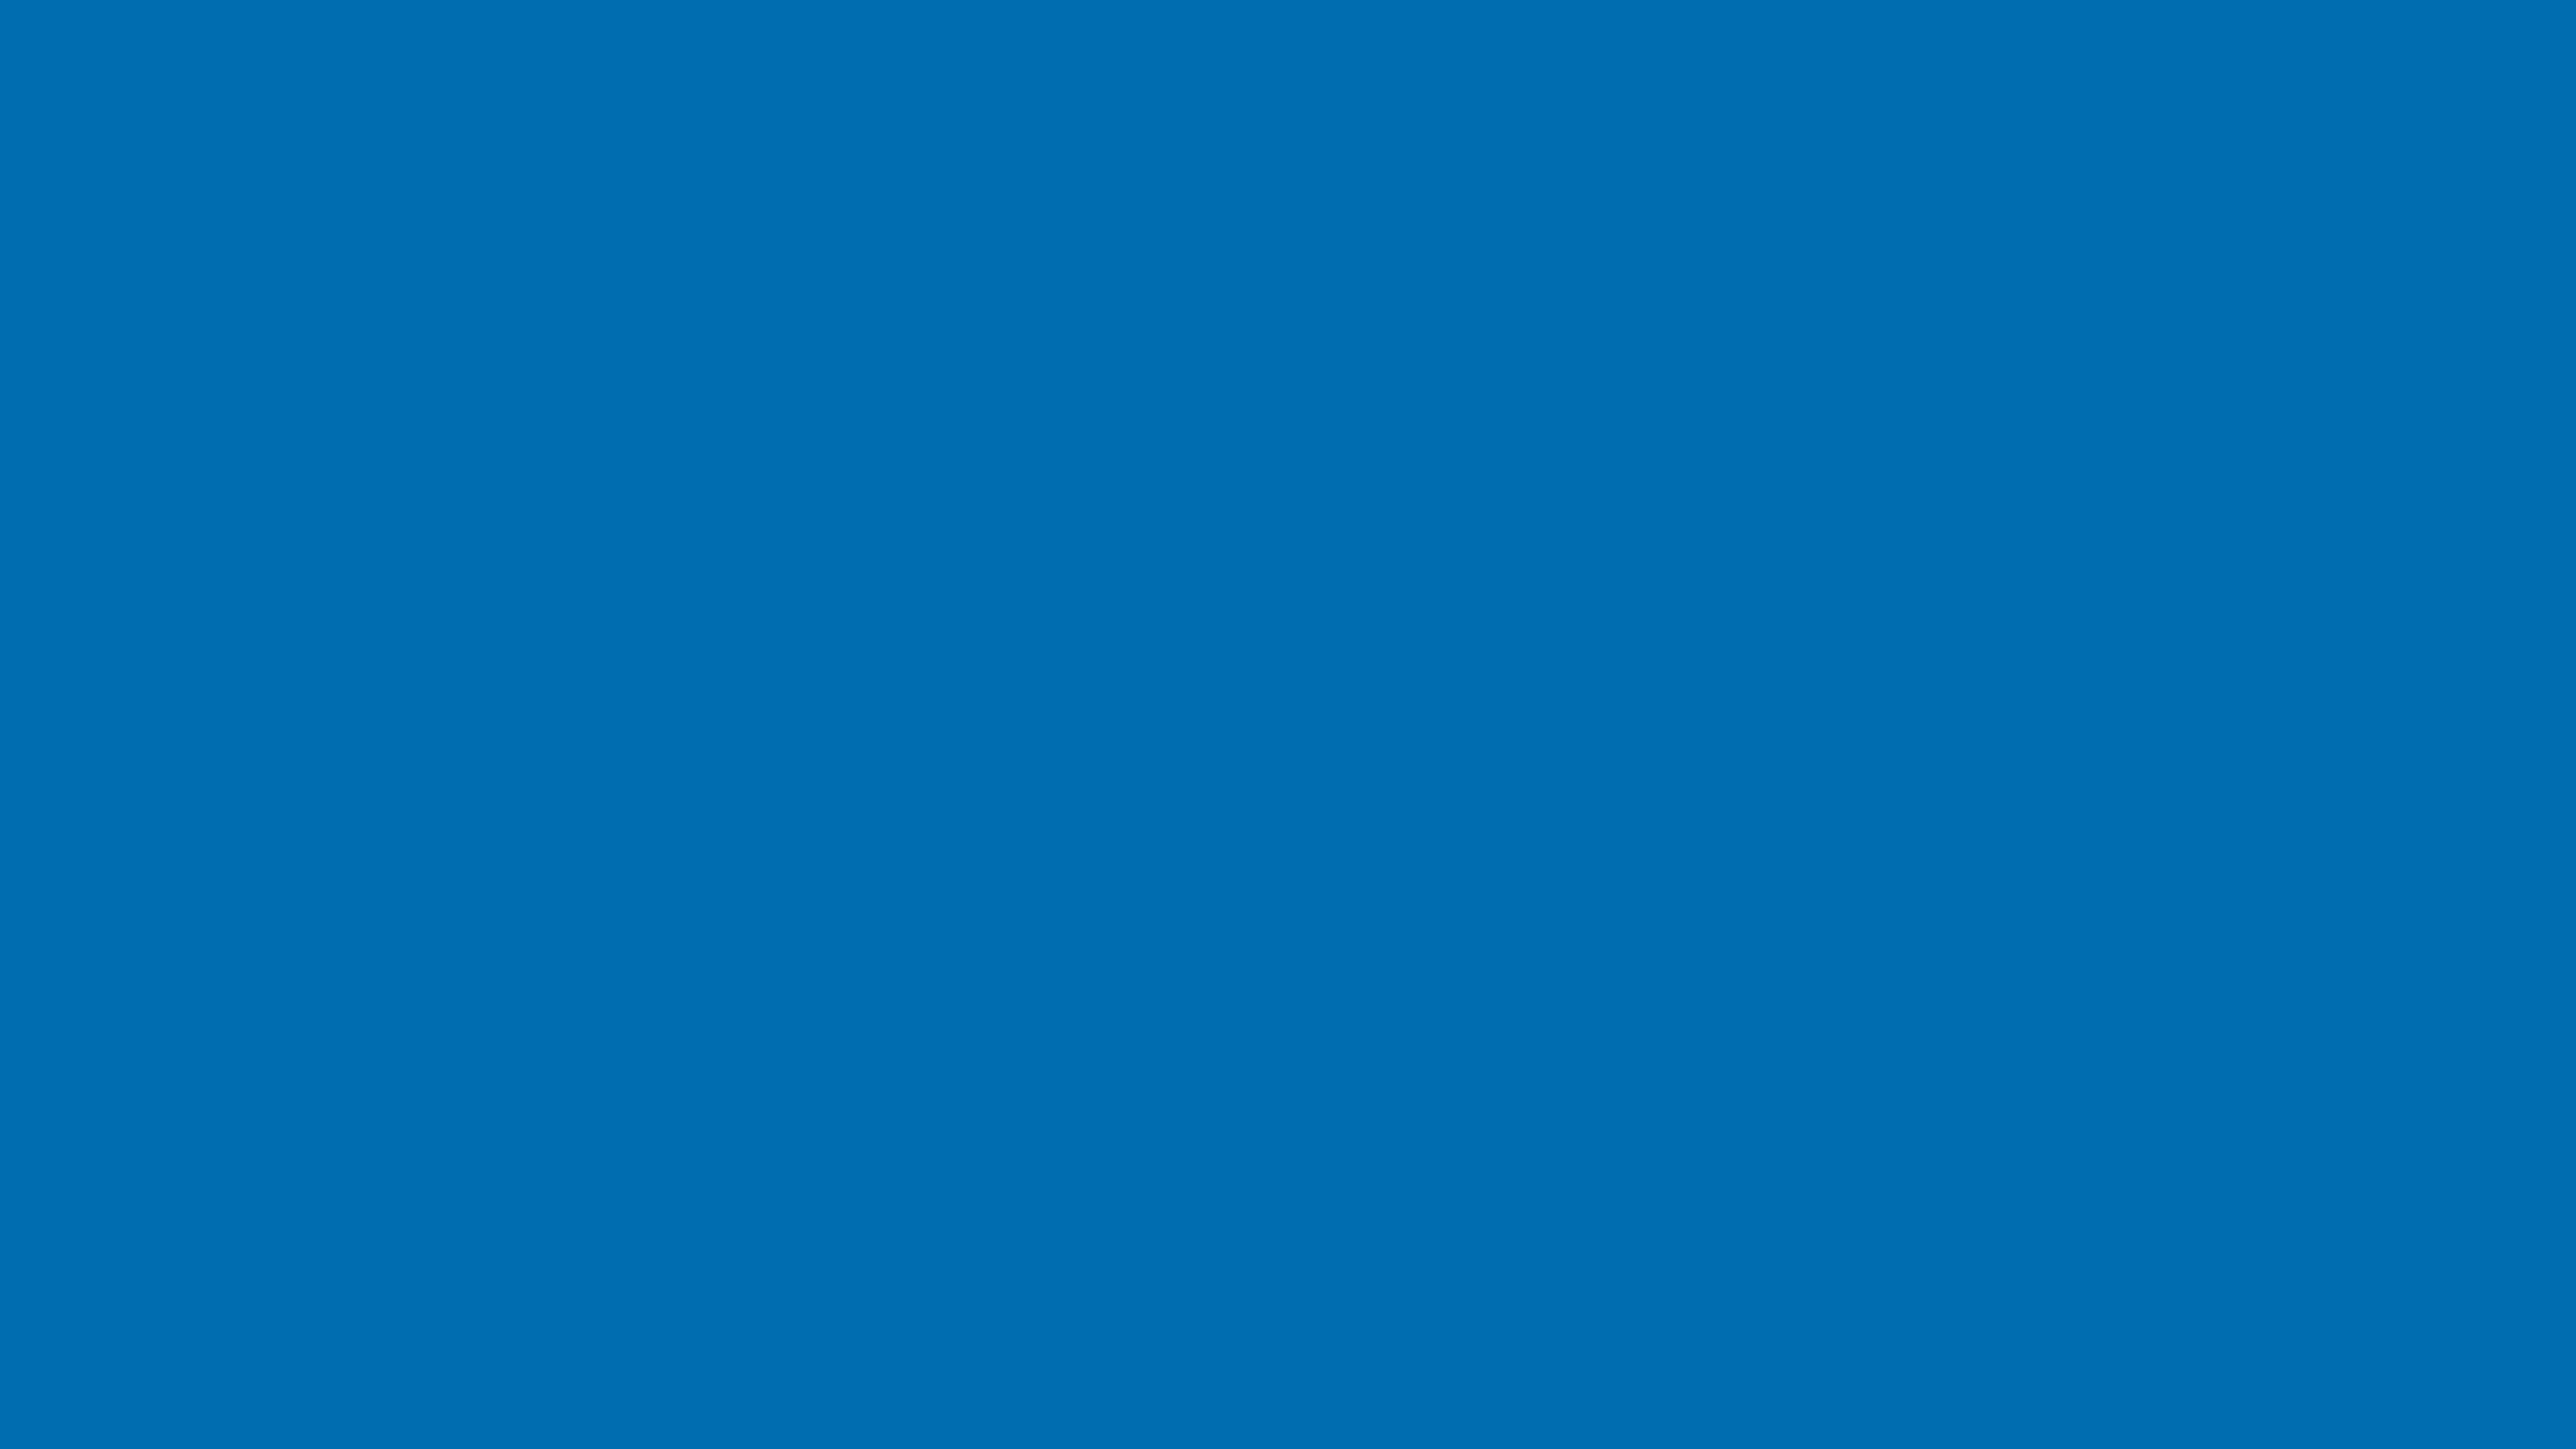 3840x2160 Honolulu Blue Solid Color Background